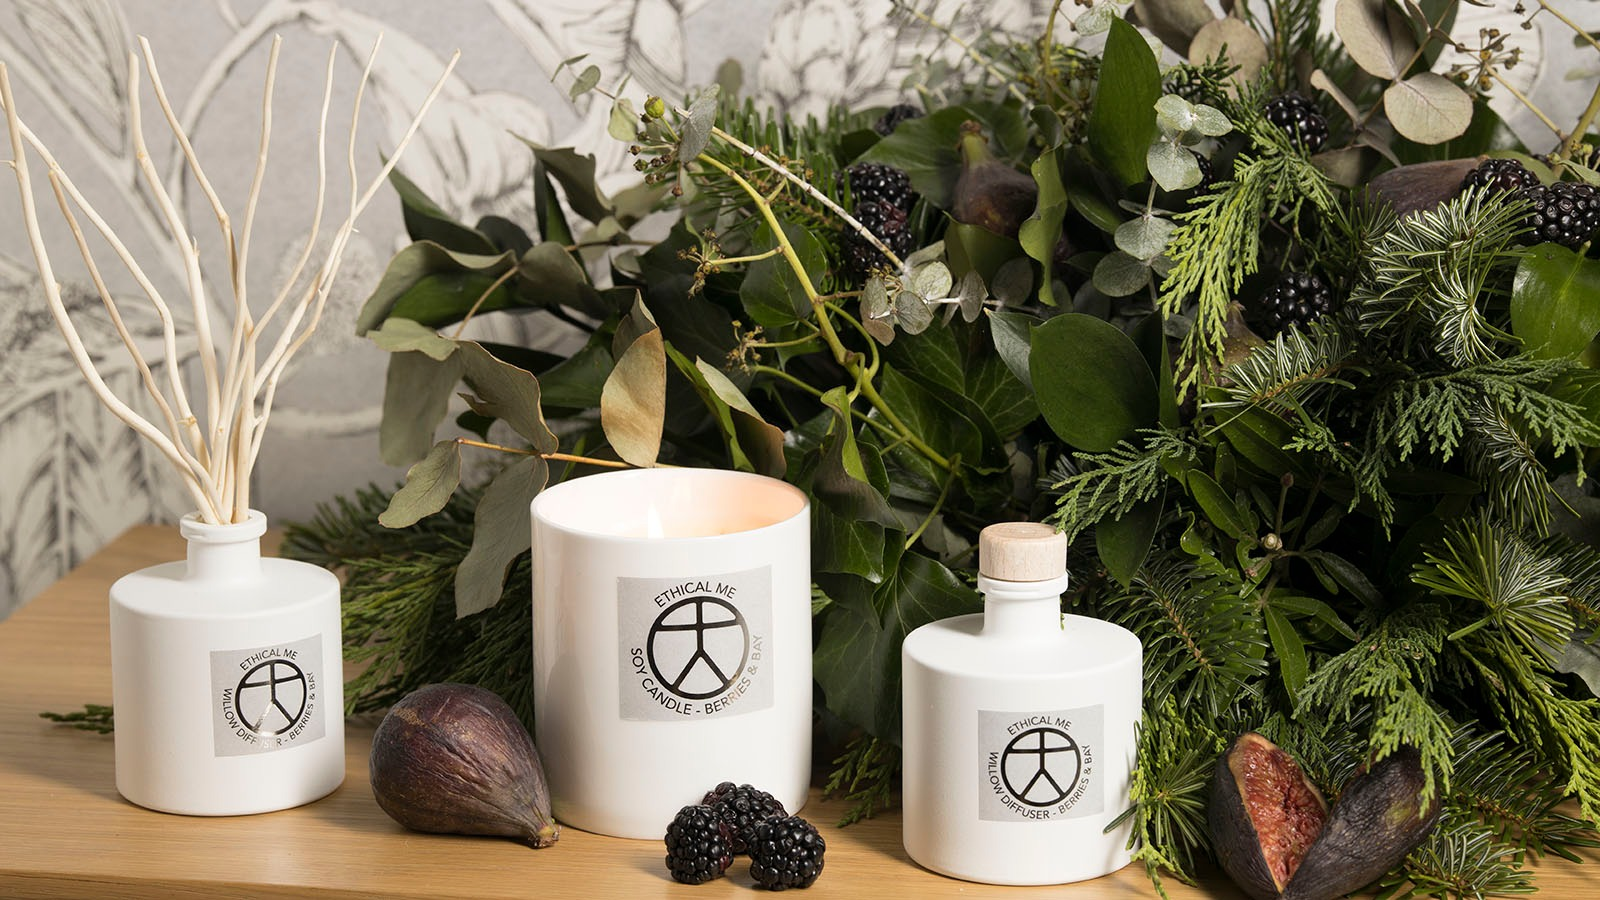 Ethical Me - Ceramic Candles & Reed Diffusers